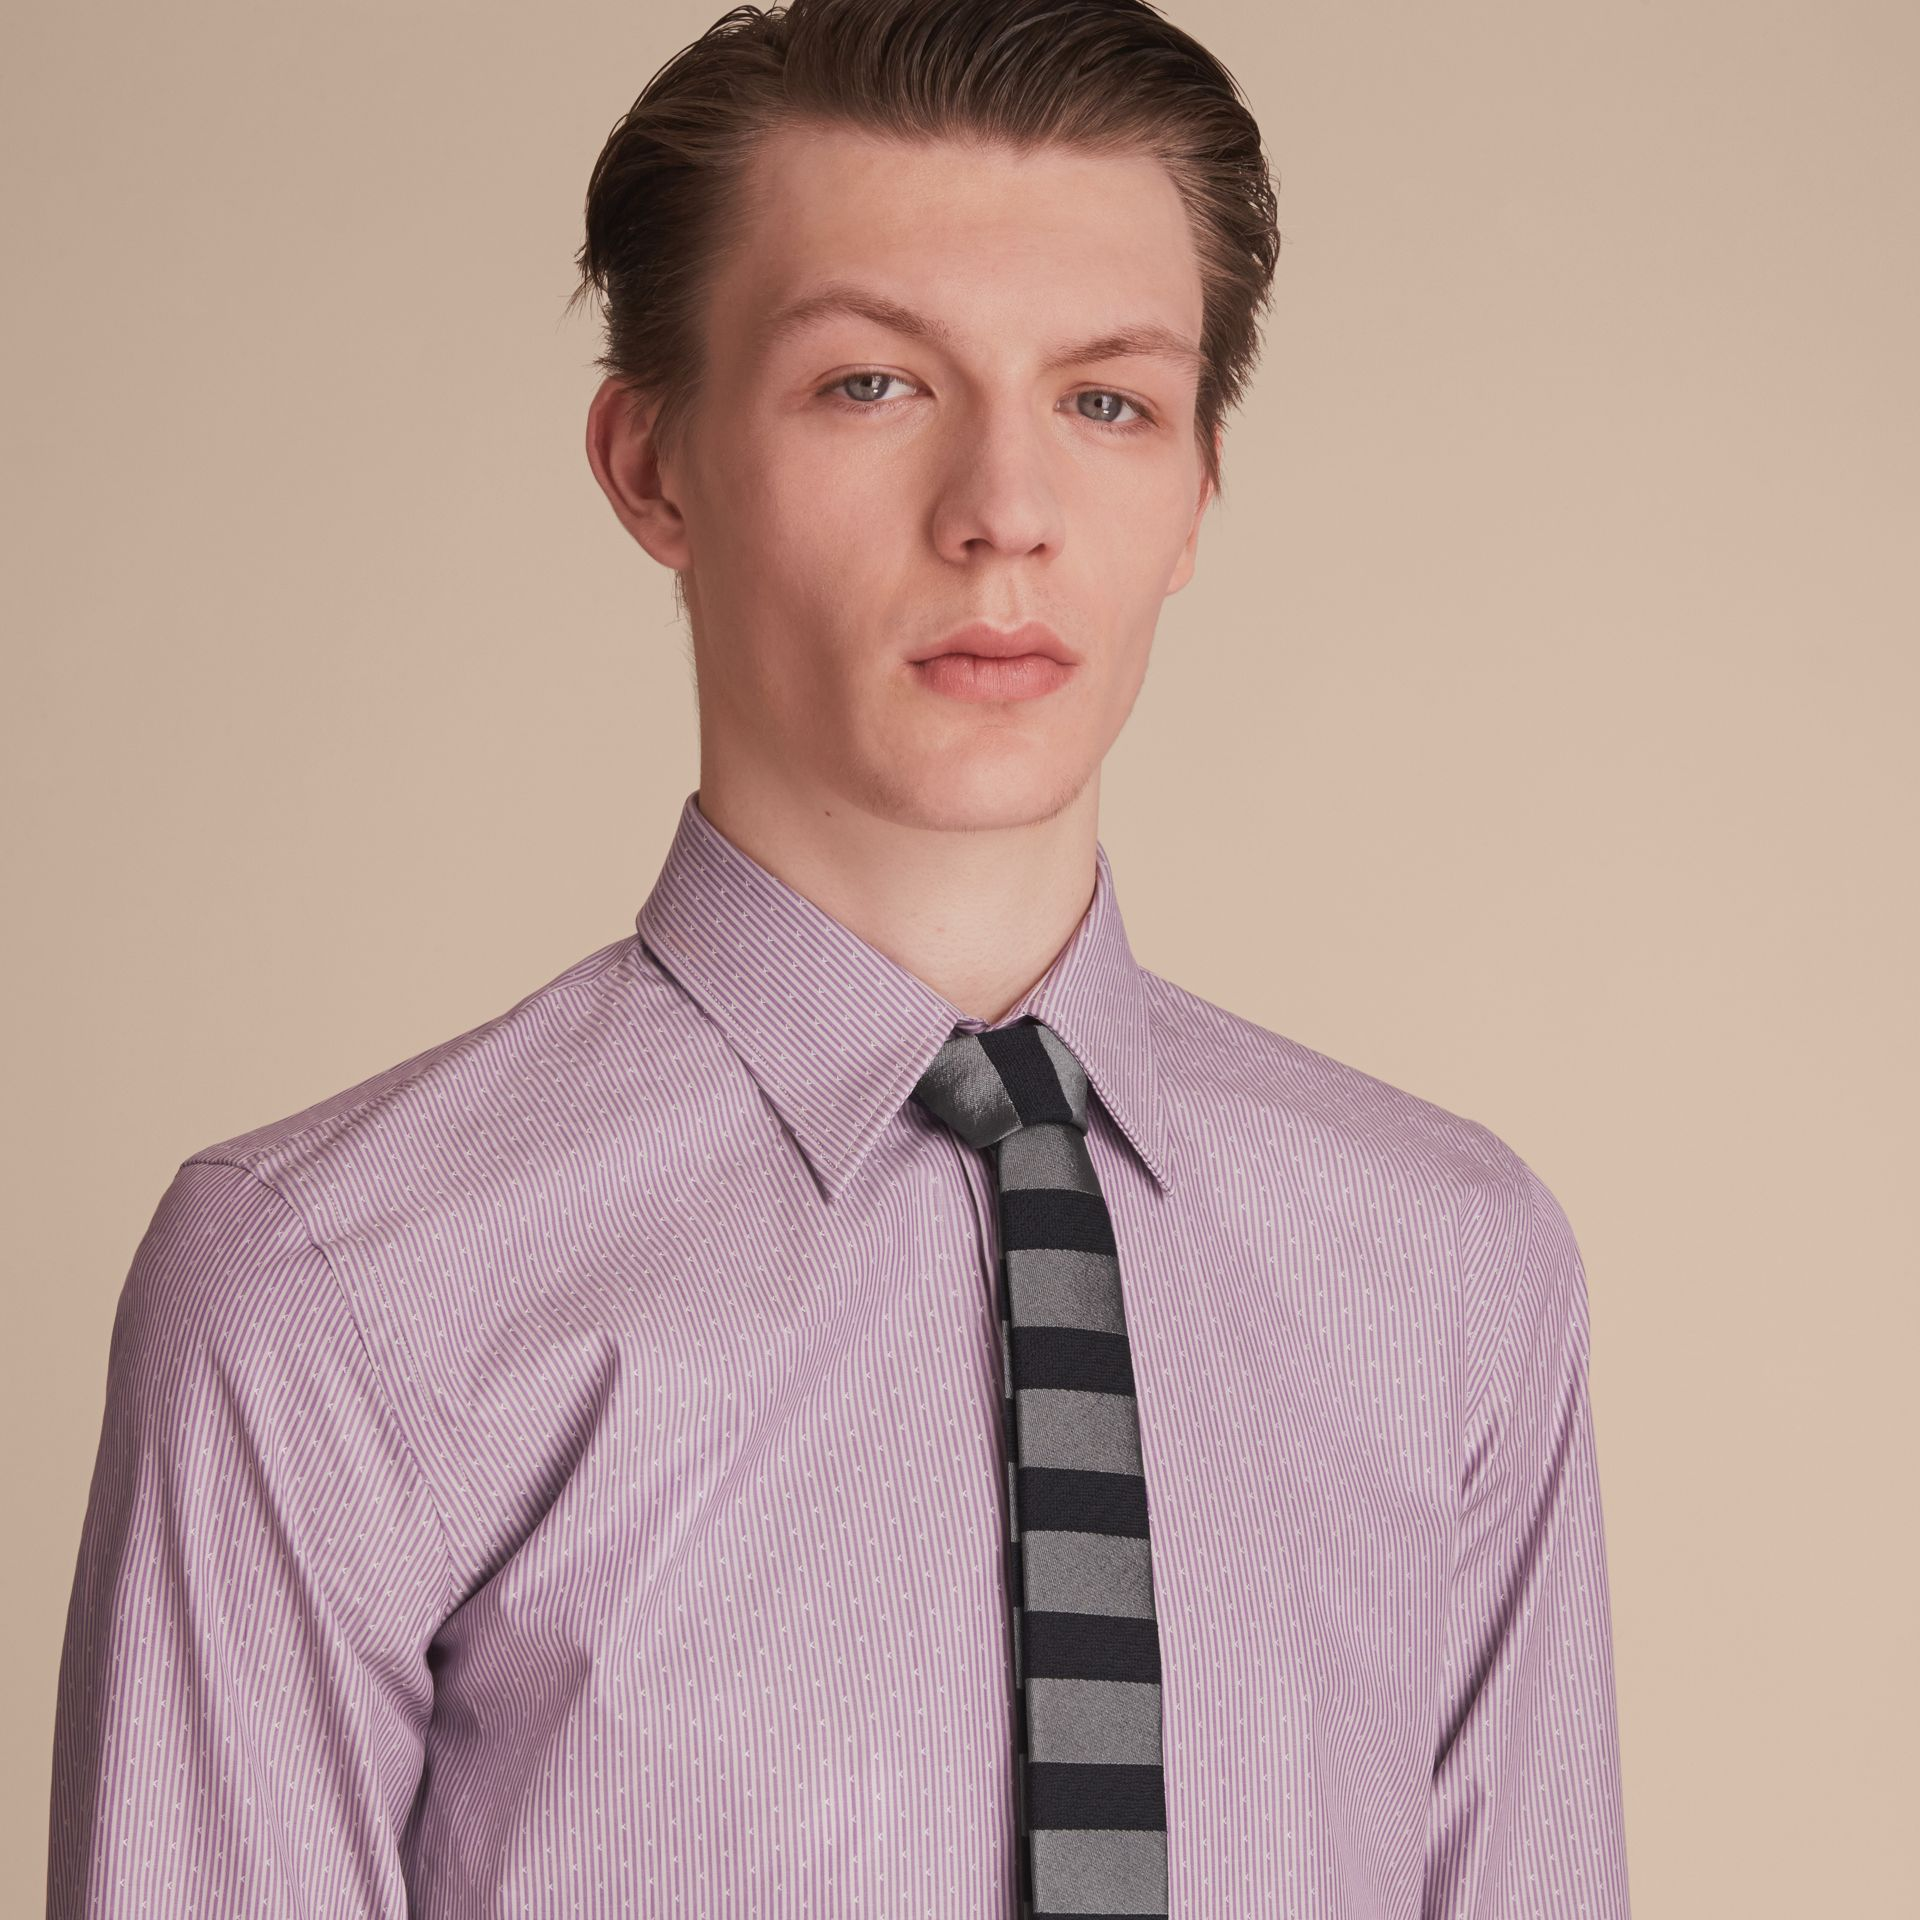 Slim Fit Striped Cross Dobby Cotton Shirt in Heather - Men | Burberry Singapore - gallery image 5